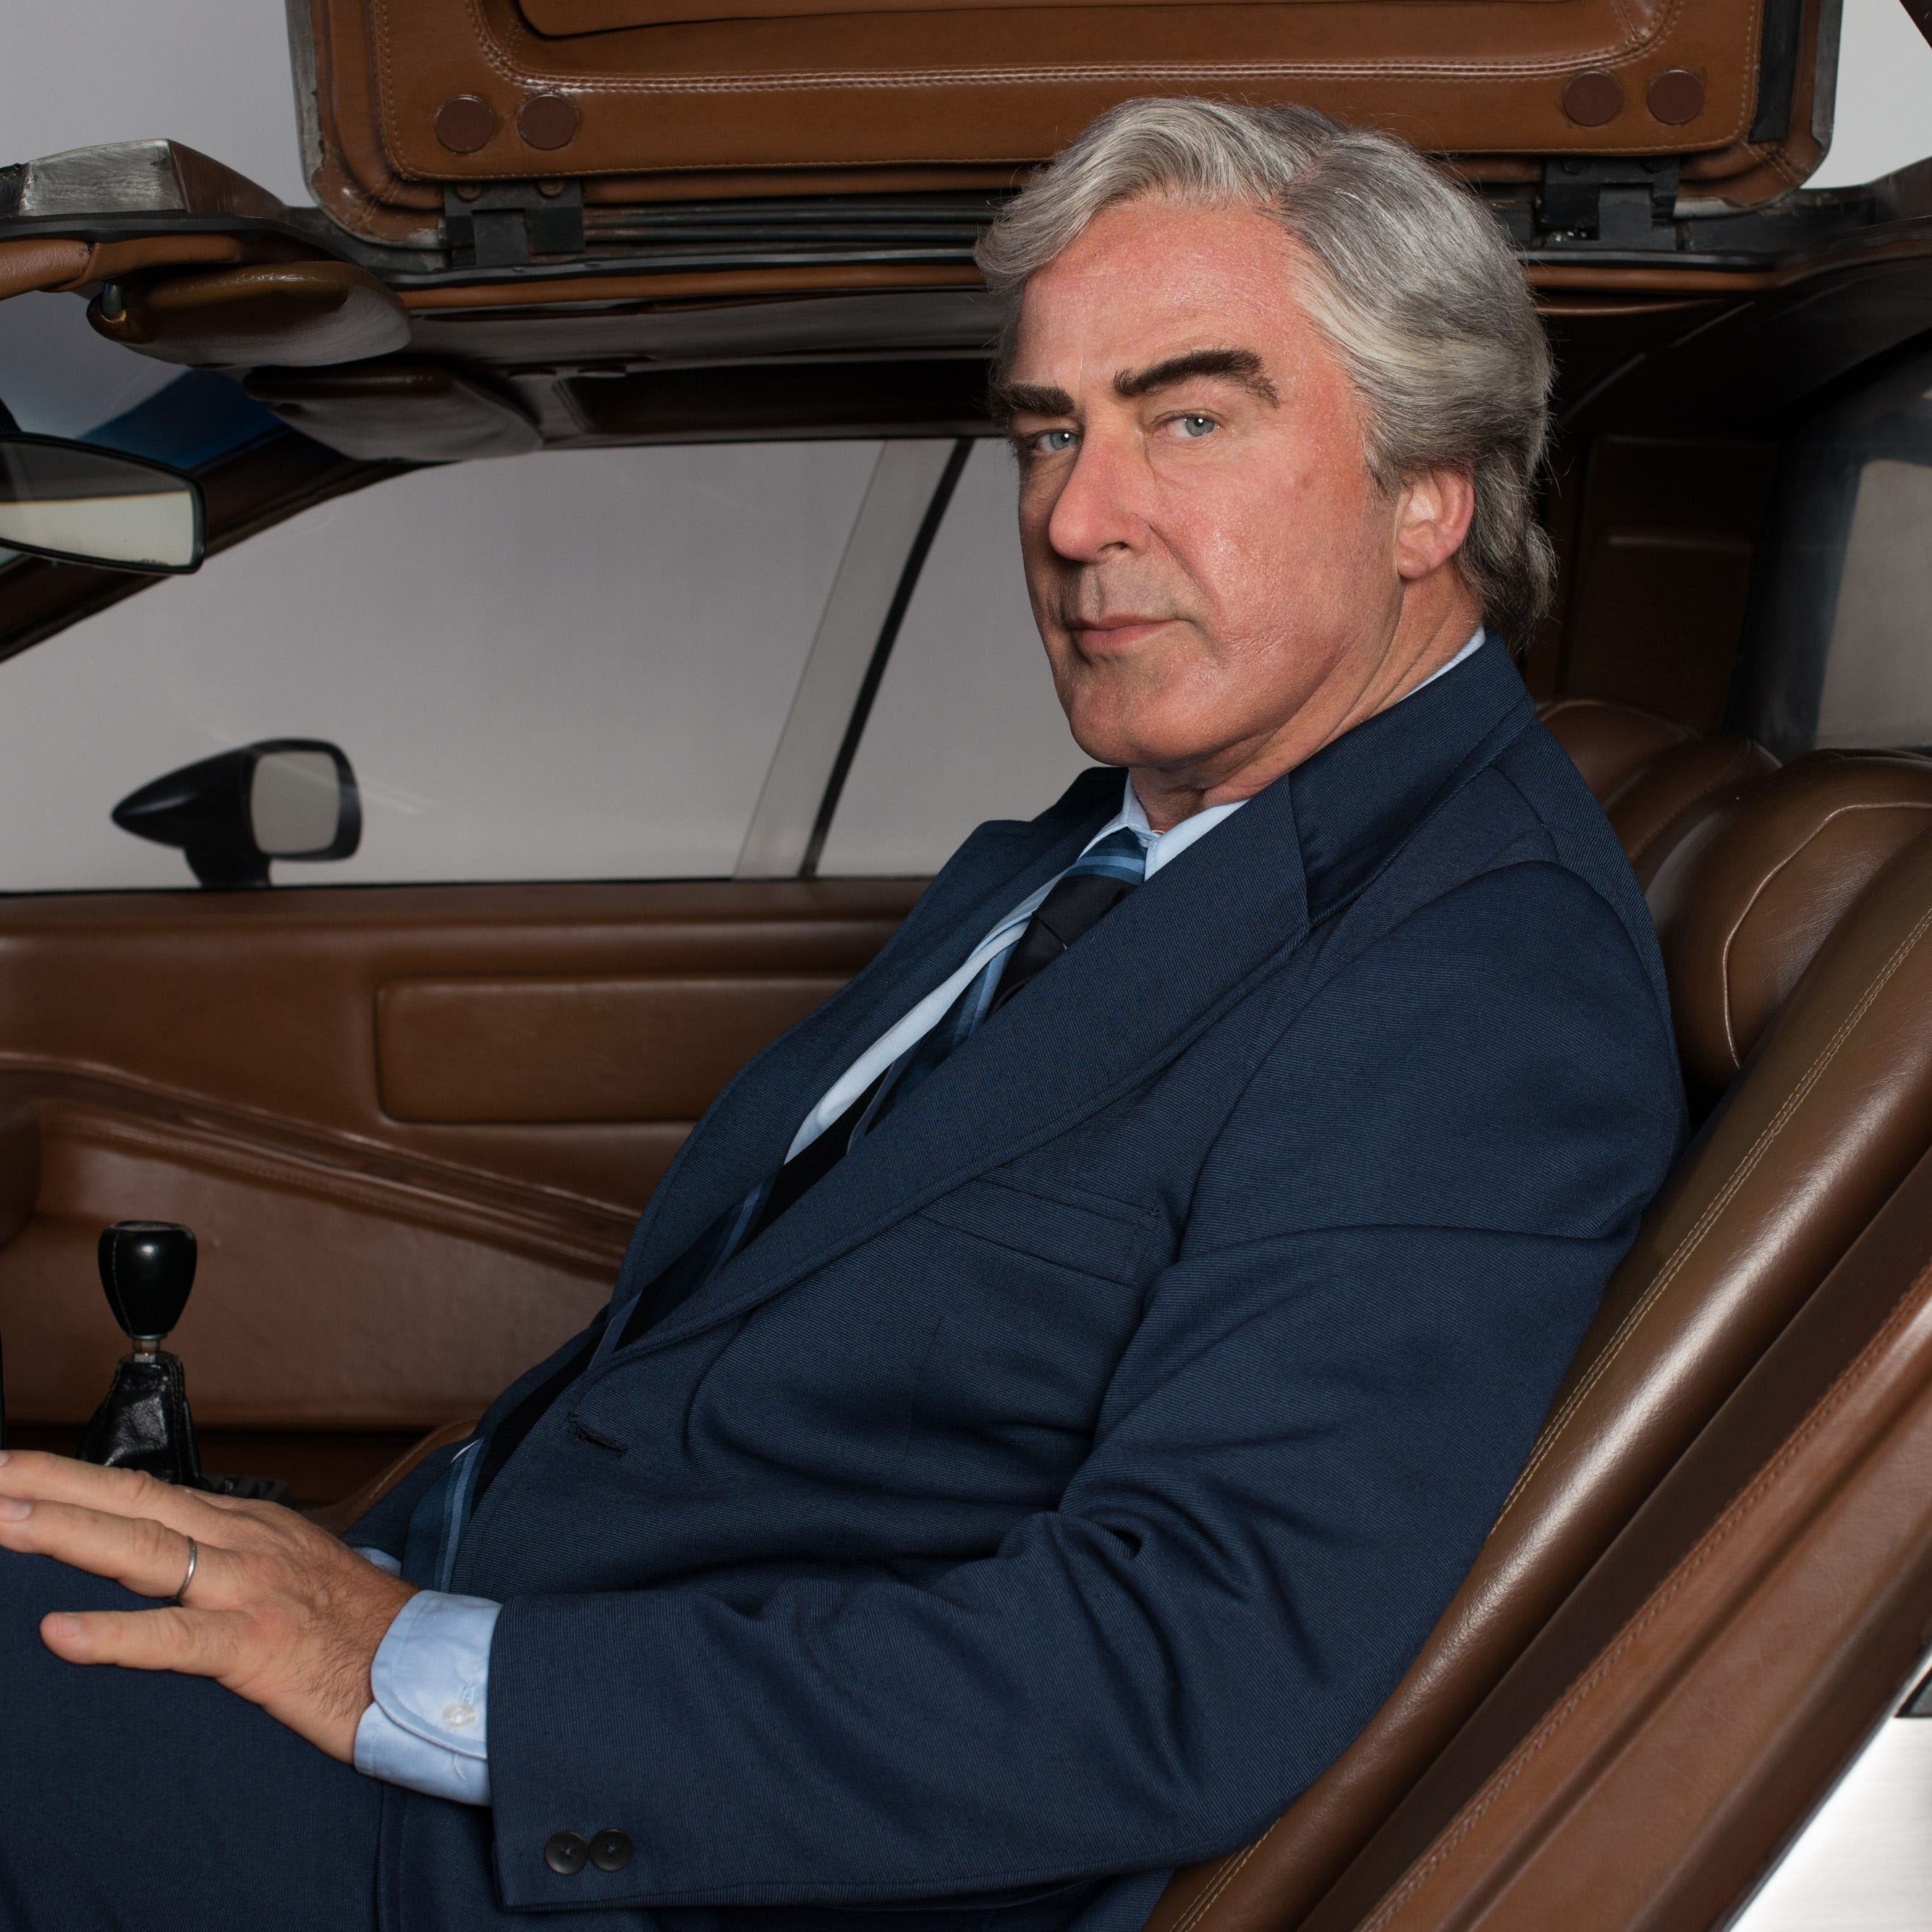 John DeLorean documentary is a fast, furious ride about auto legend's fall from grace